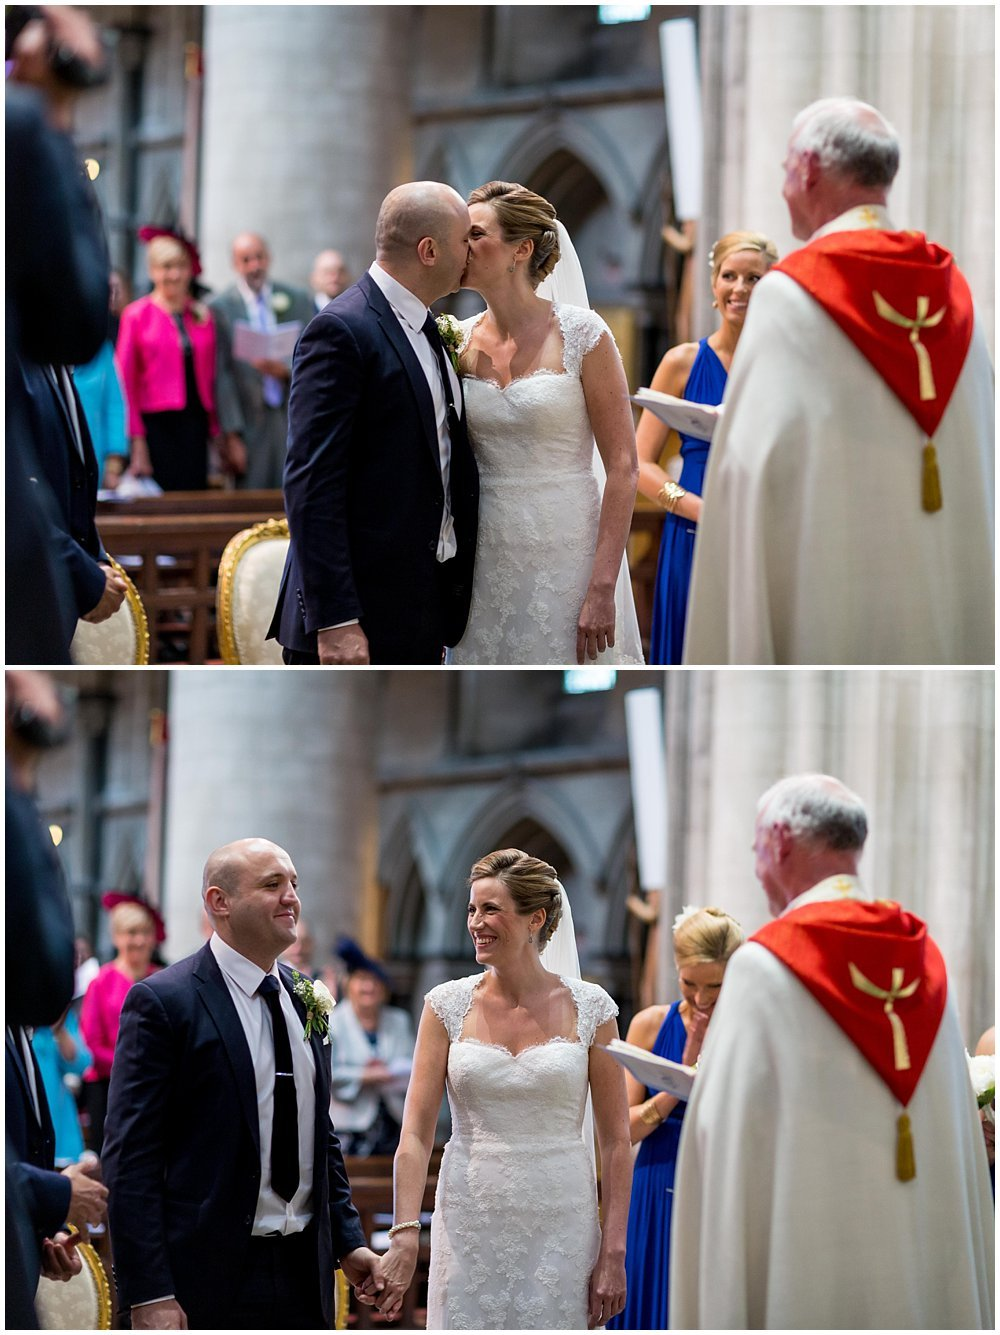 AMY AND DUNCAN NORWICH CATHEDRAL AND THE BOATHOUSE WEDDING - NORWICH AND NORFOLK WEDDING PHOTOGRAPHER 15